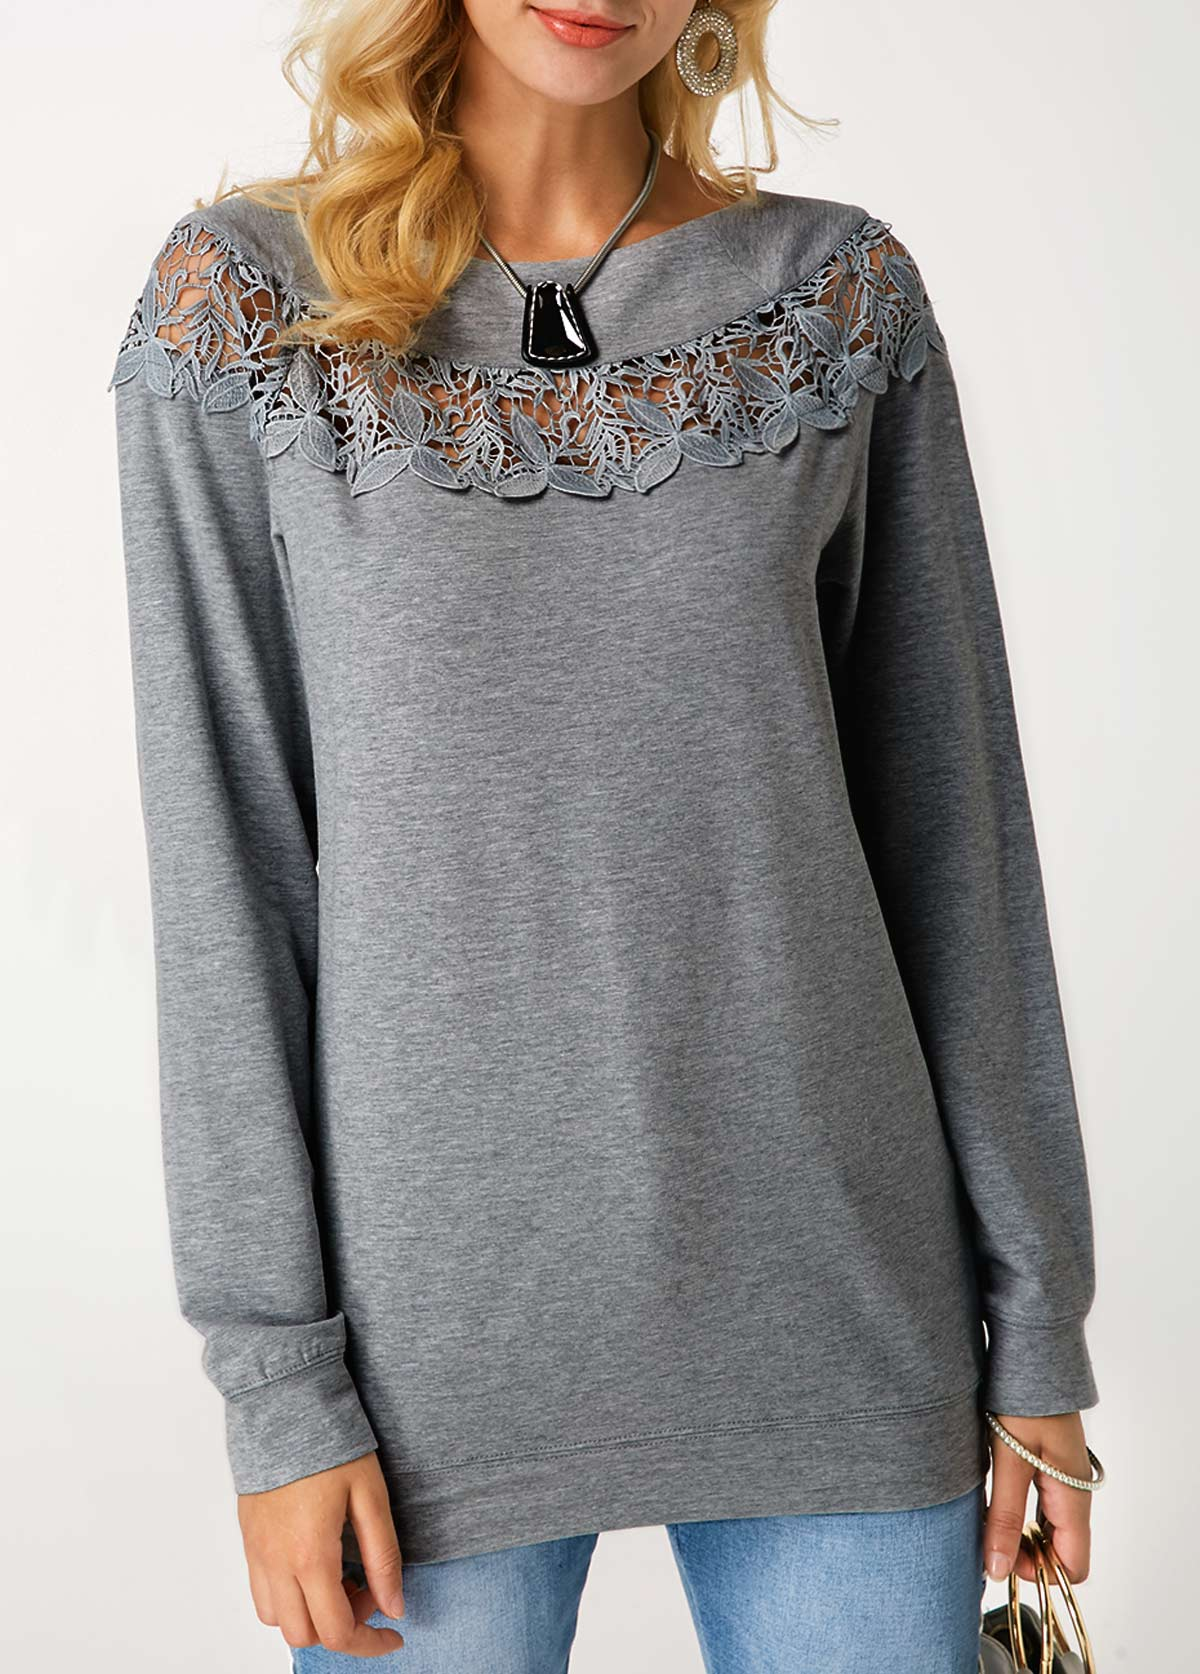 Crochet Panel Grey Marl Pullover Sweatshirt